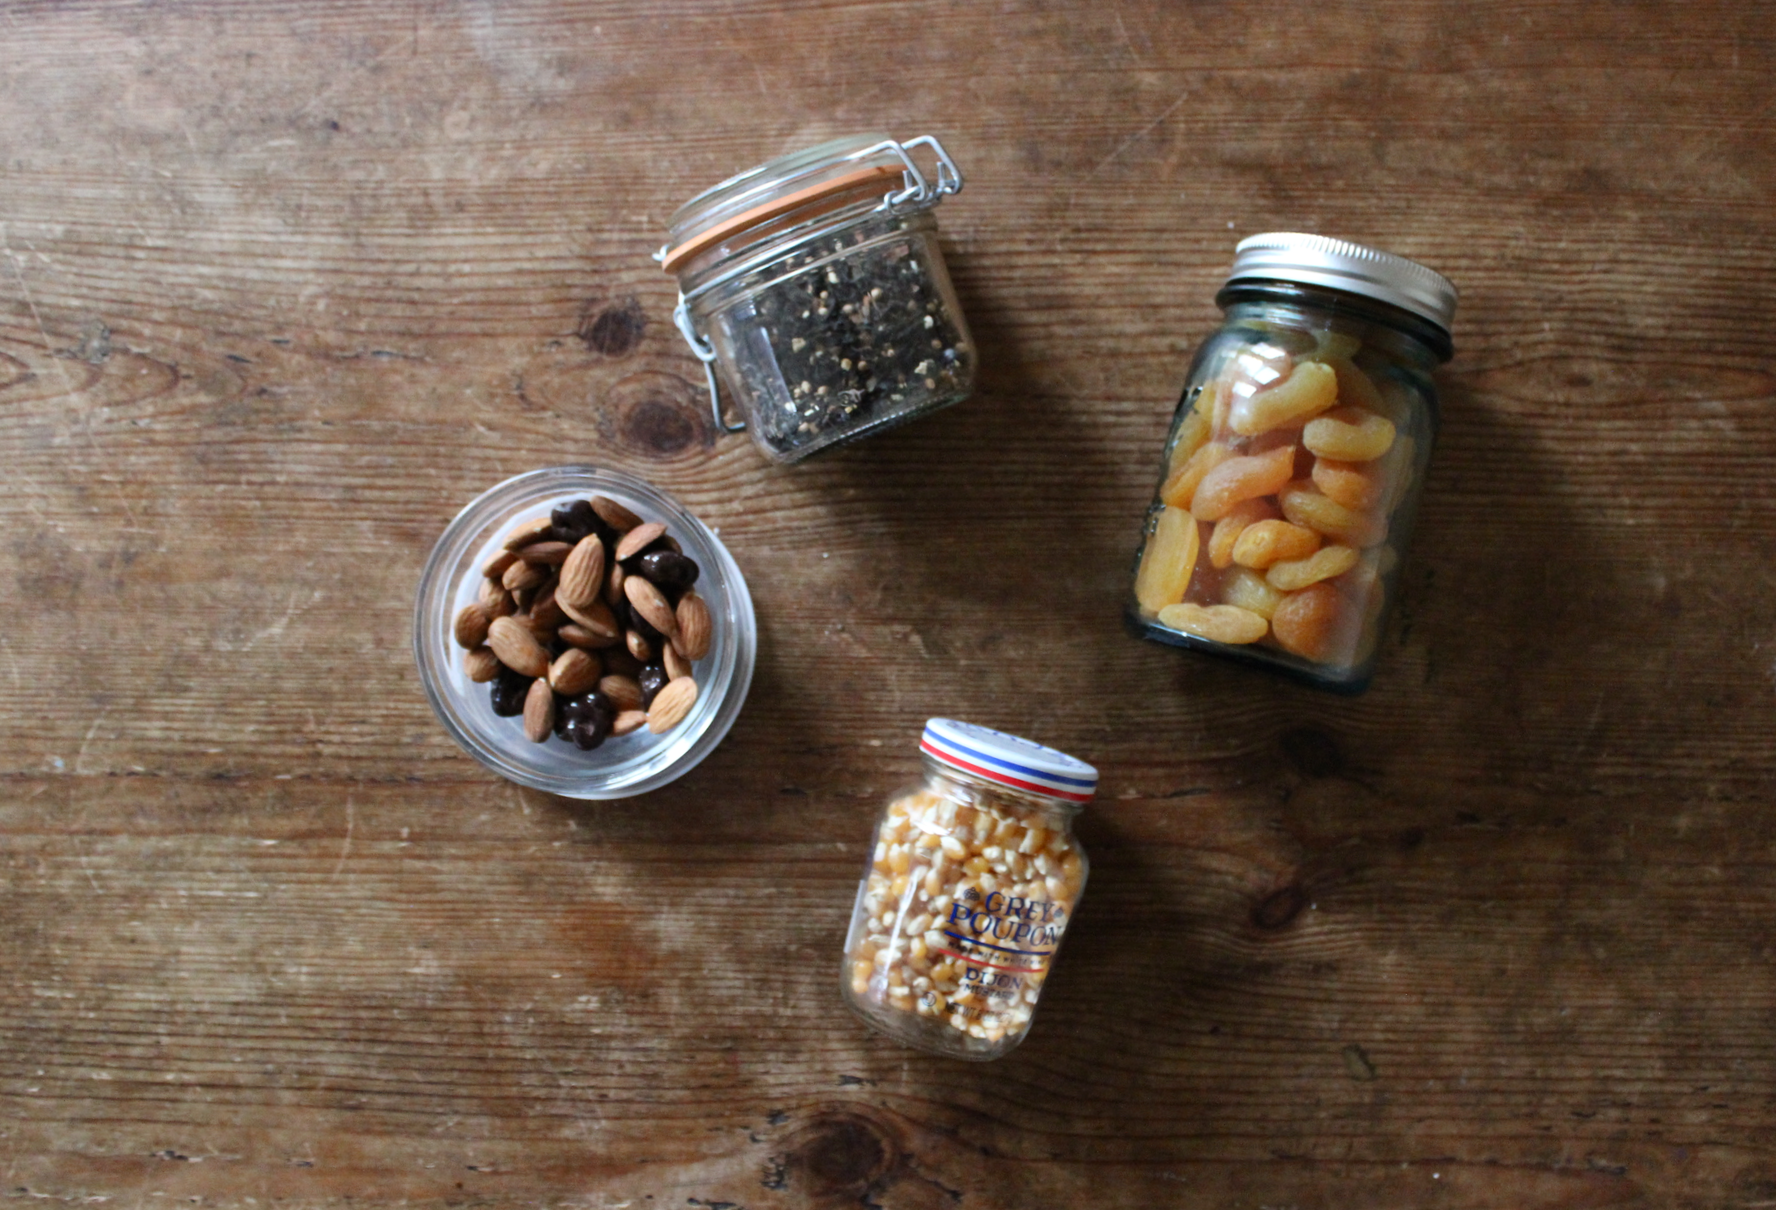 Mismatched glass jars for zero waste, plastic-free pantry and kitchen storage | Litterless